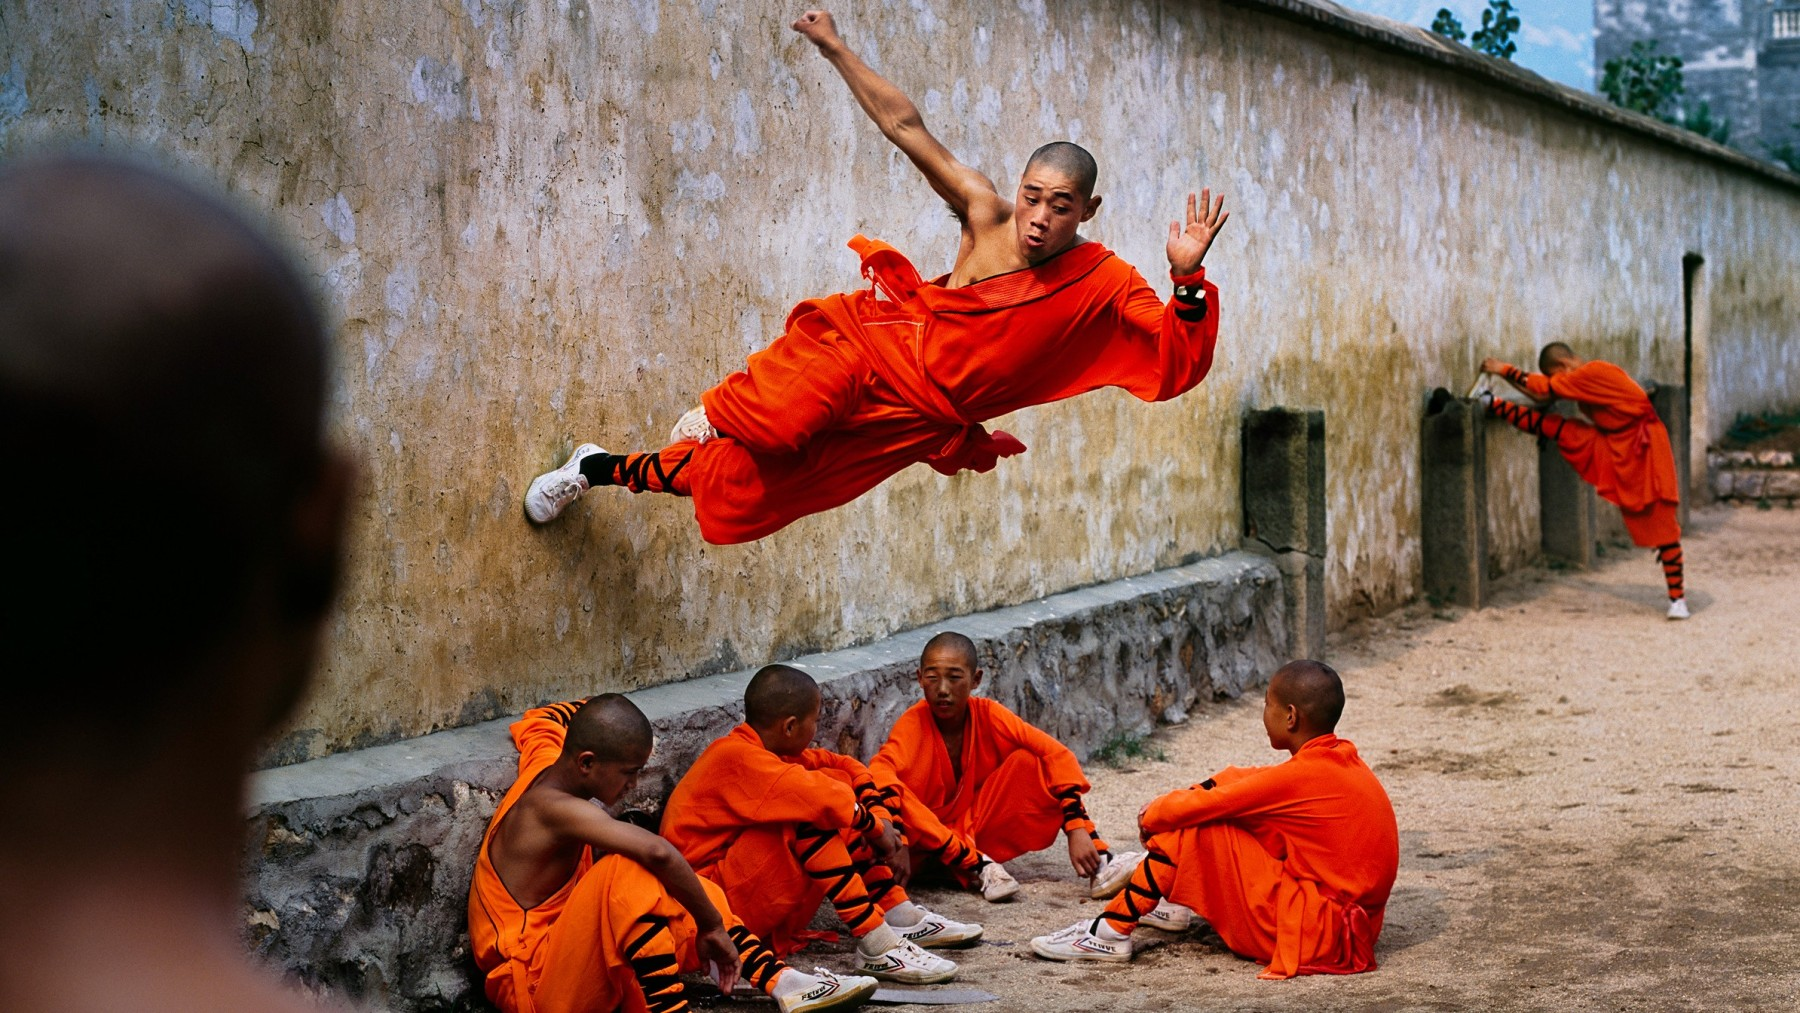 Steve McCurry Photos